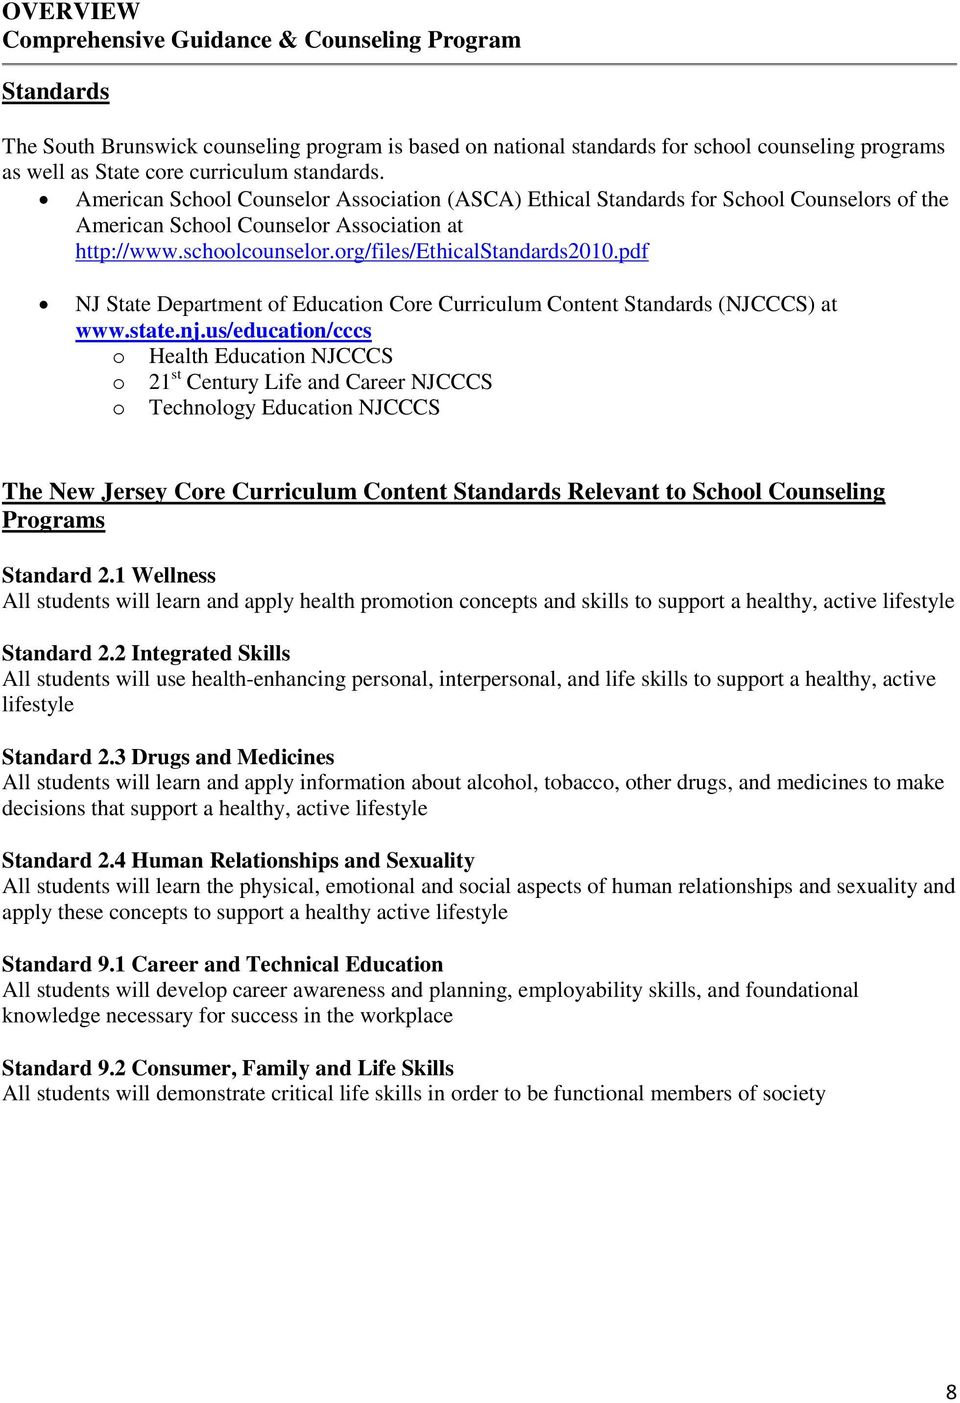 pdf NJ State Department f Educatin Cre Curriculum Cntent Standards (NJCCCS) at www.state.nj.